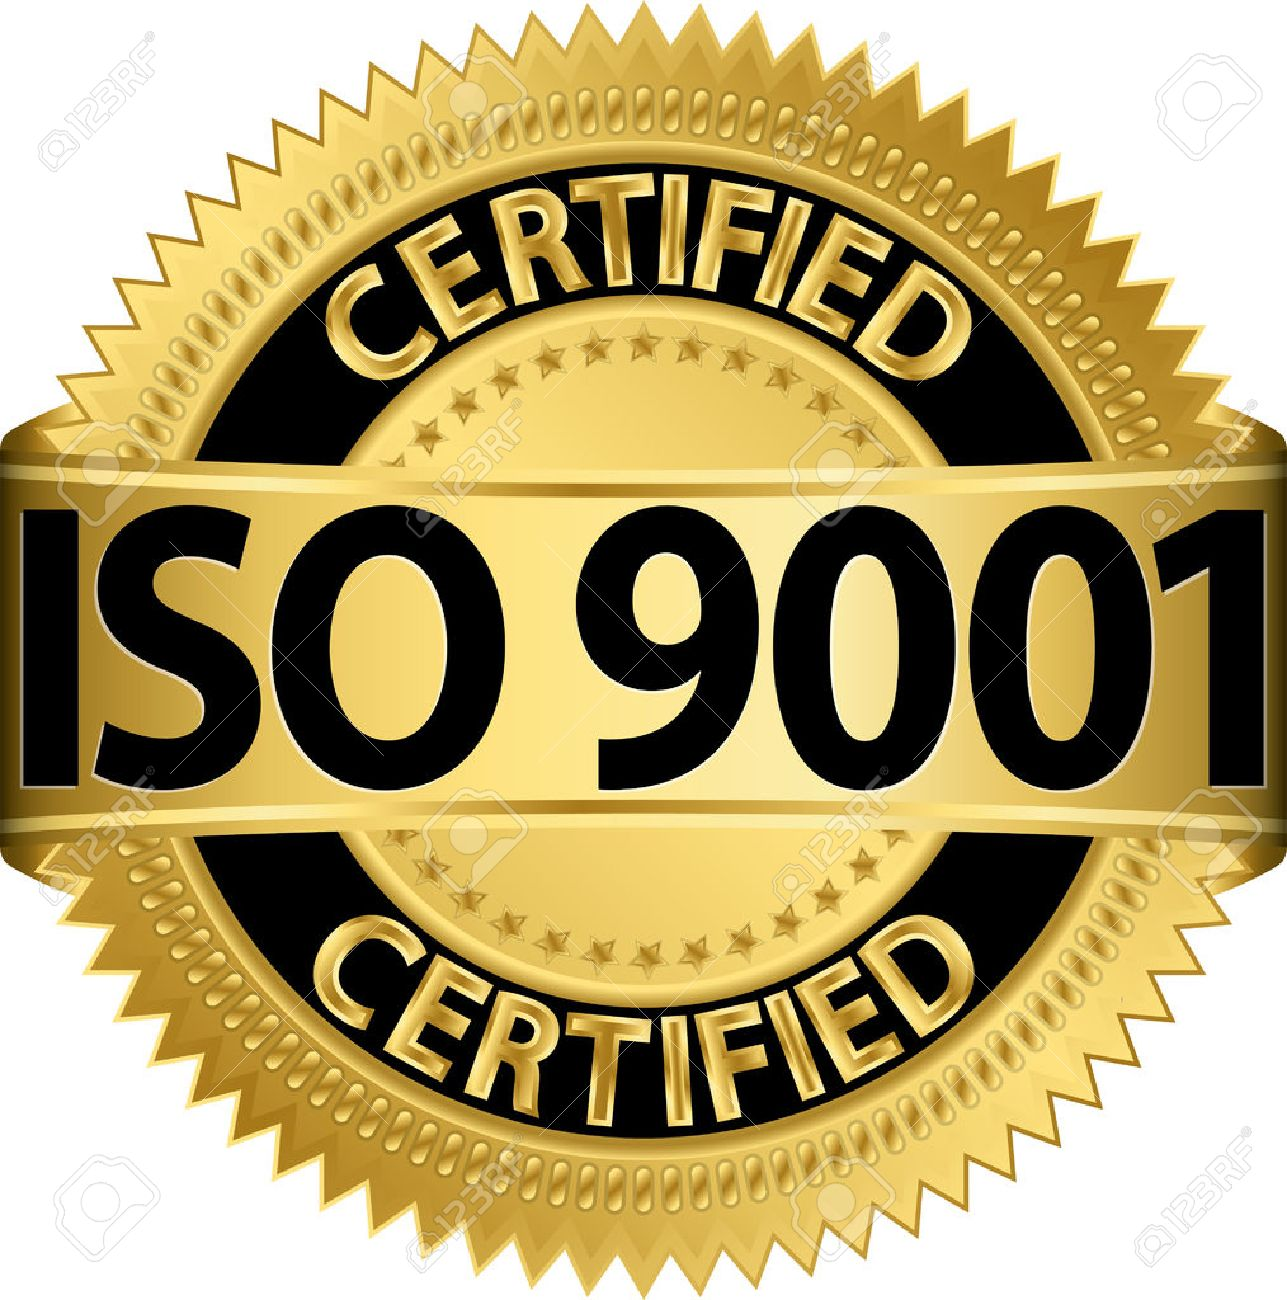 iso-9001-certified-golden-label